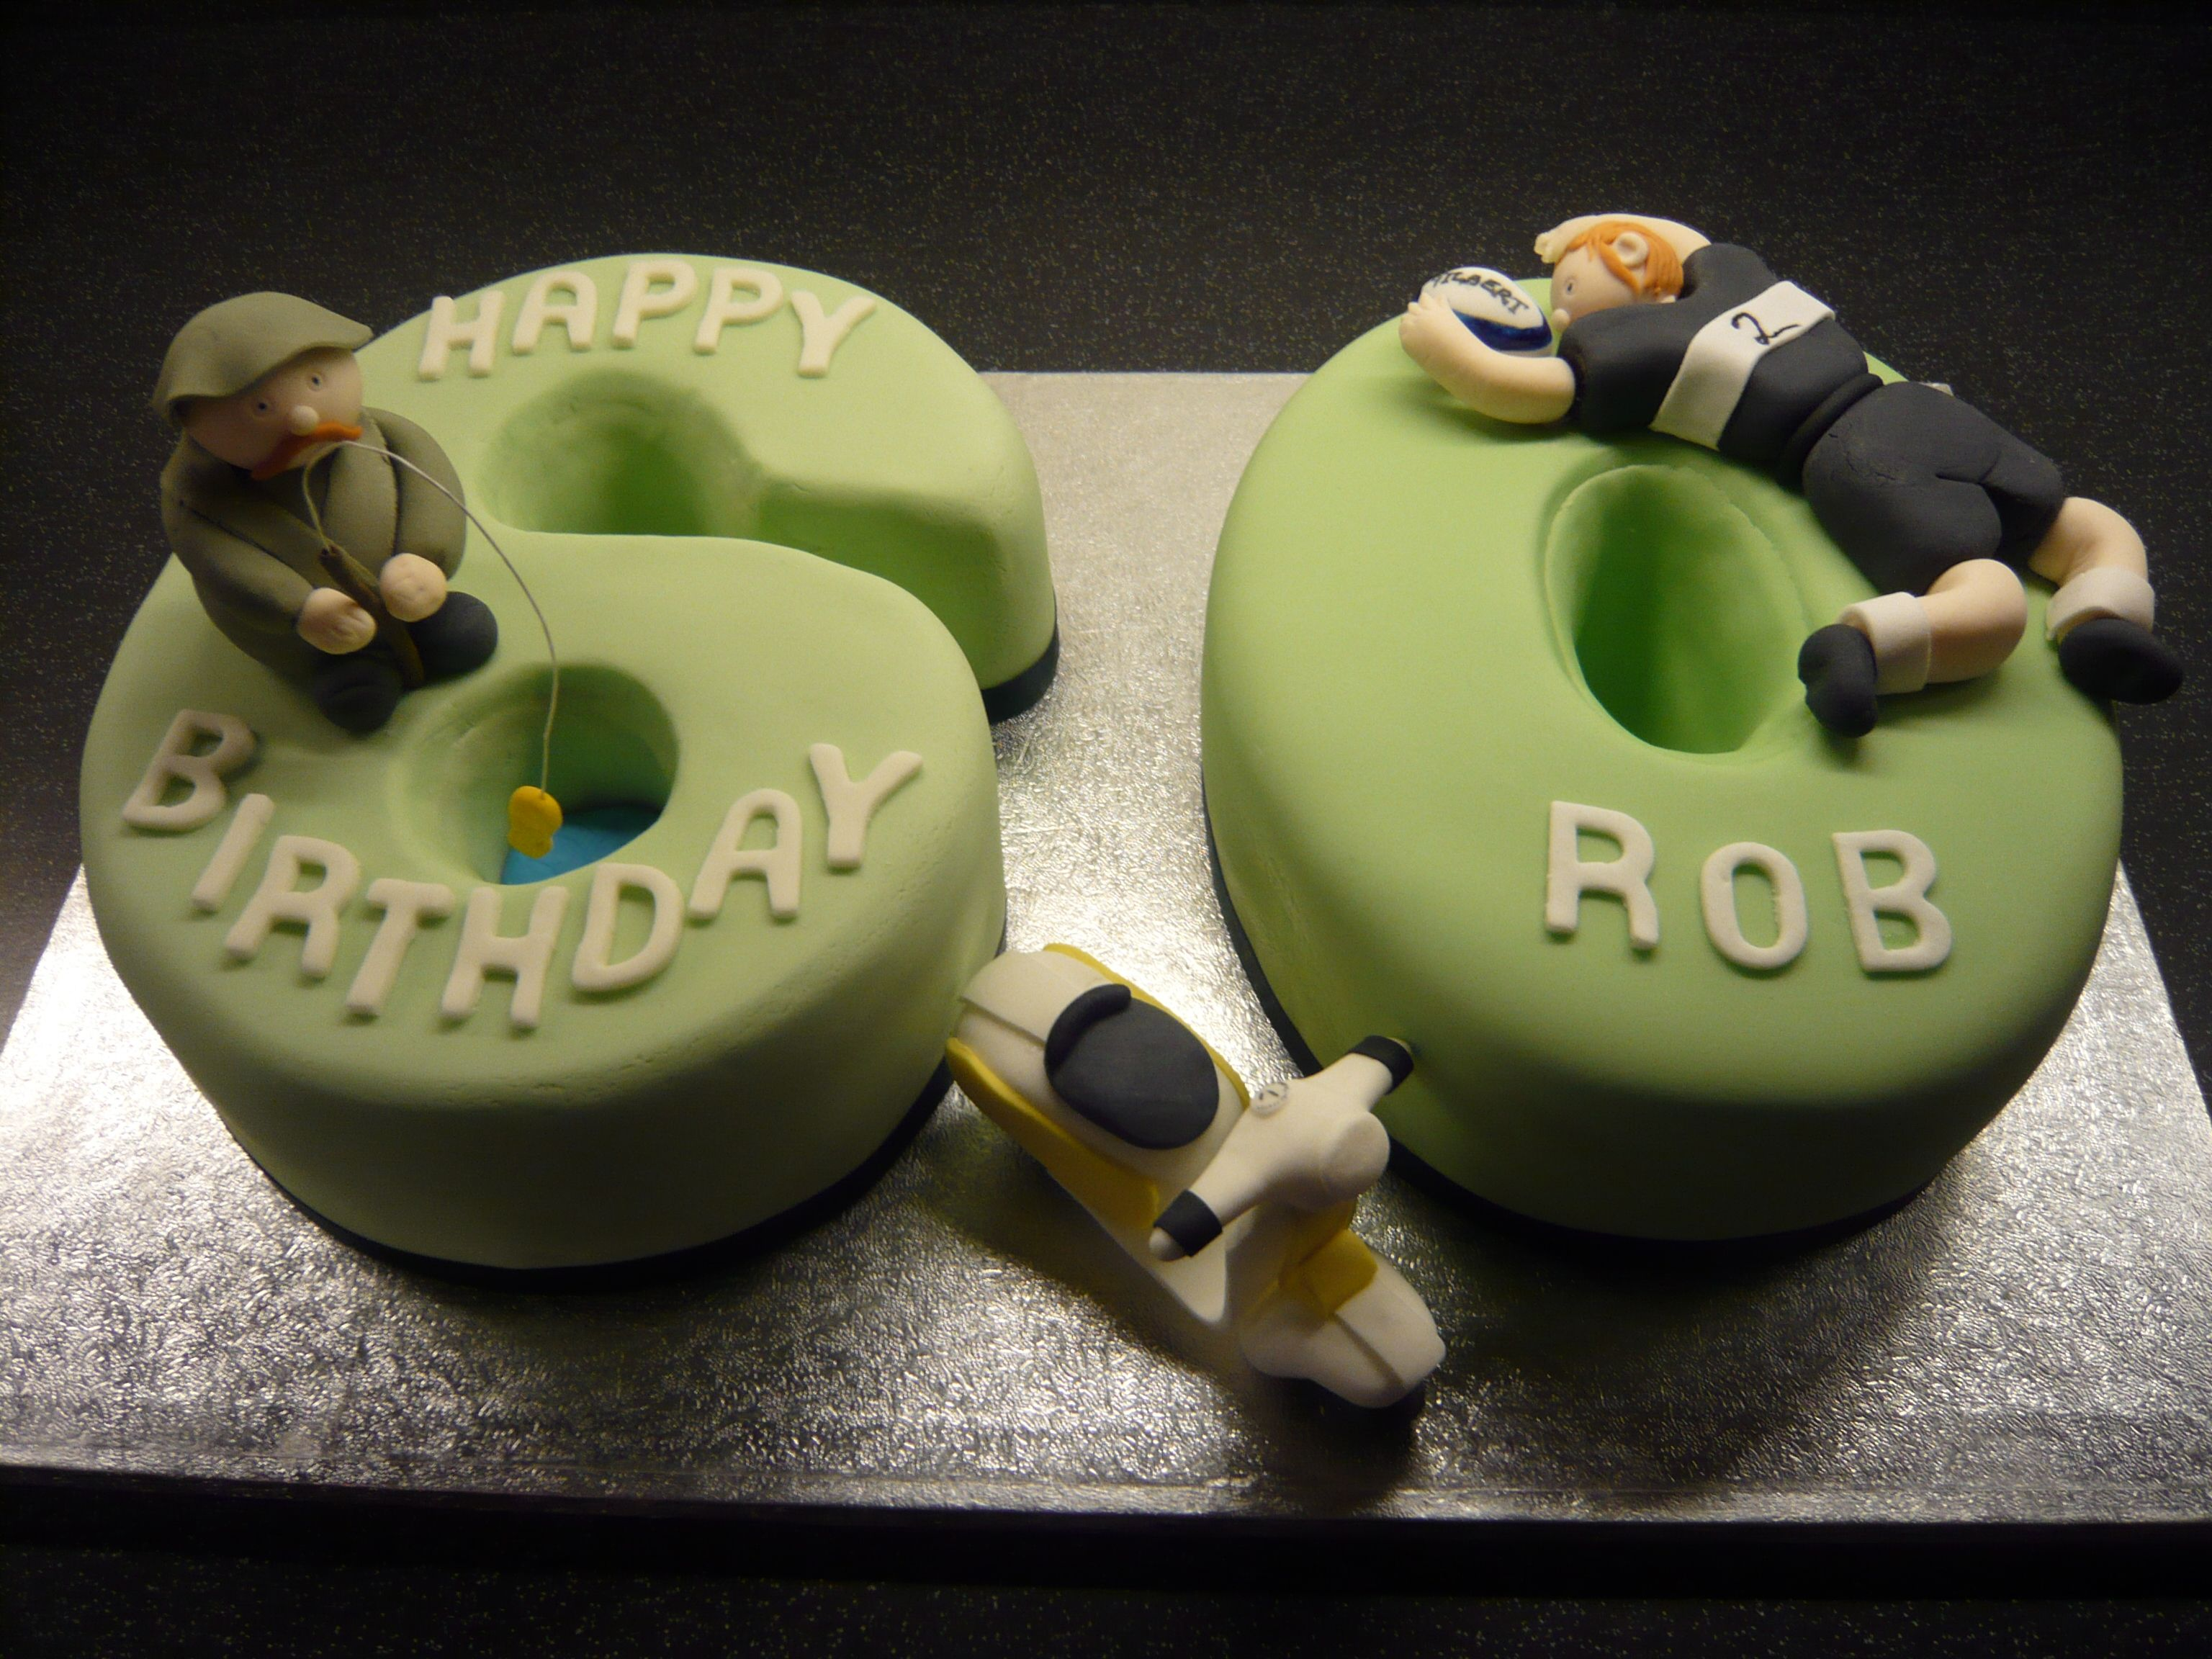 60 With Caracters Cool Cakes 60th Birthday Cakes 60th